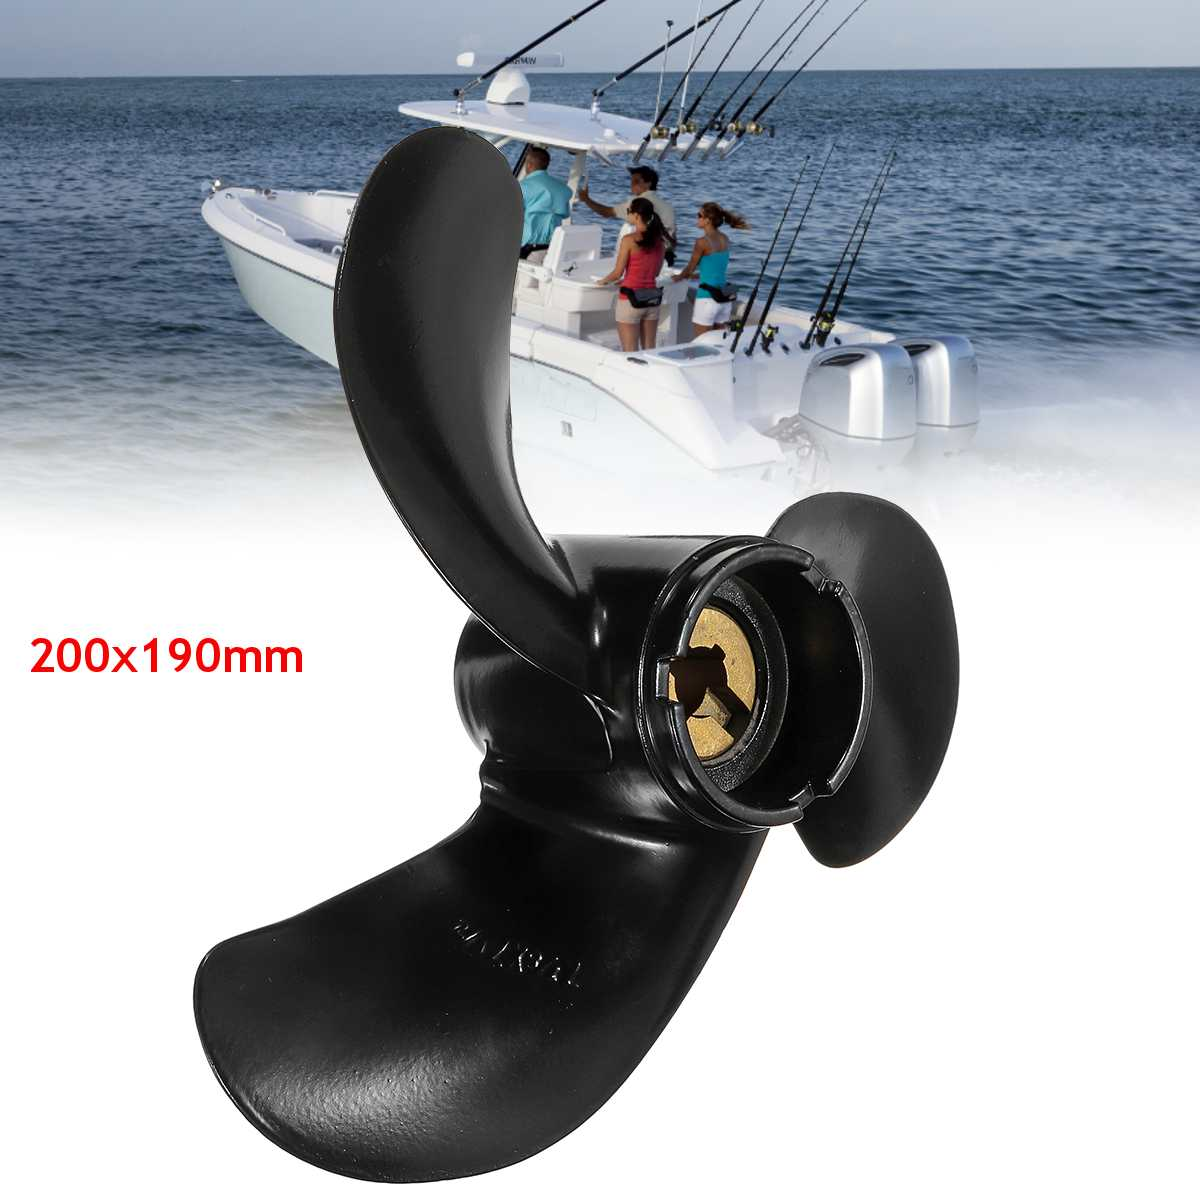 6011 079 07P 7 7/8 x 7 1/2 Propeller For Honda Boat Outboard Engine 5HP Black Aluminum Alloy 3 Blades R Rotation Marine Parts